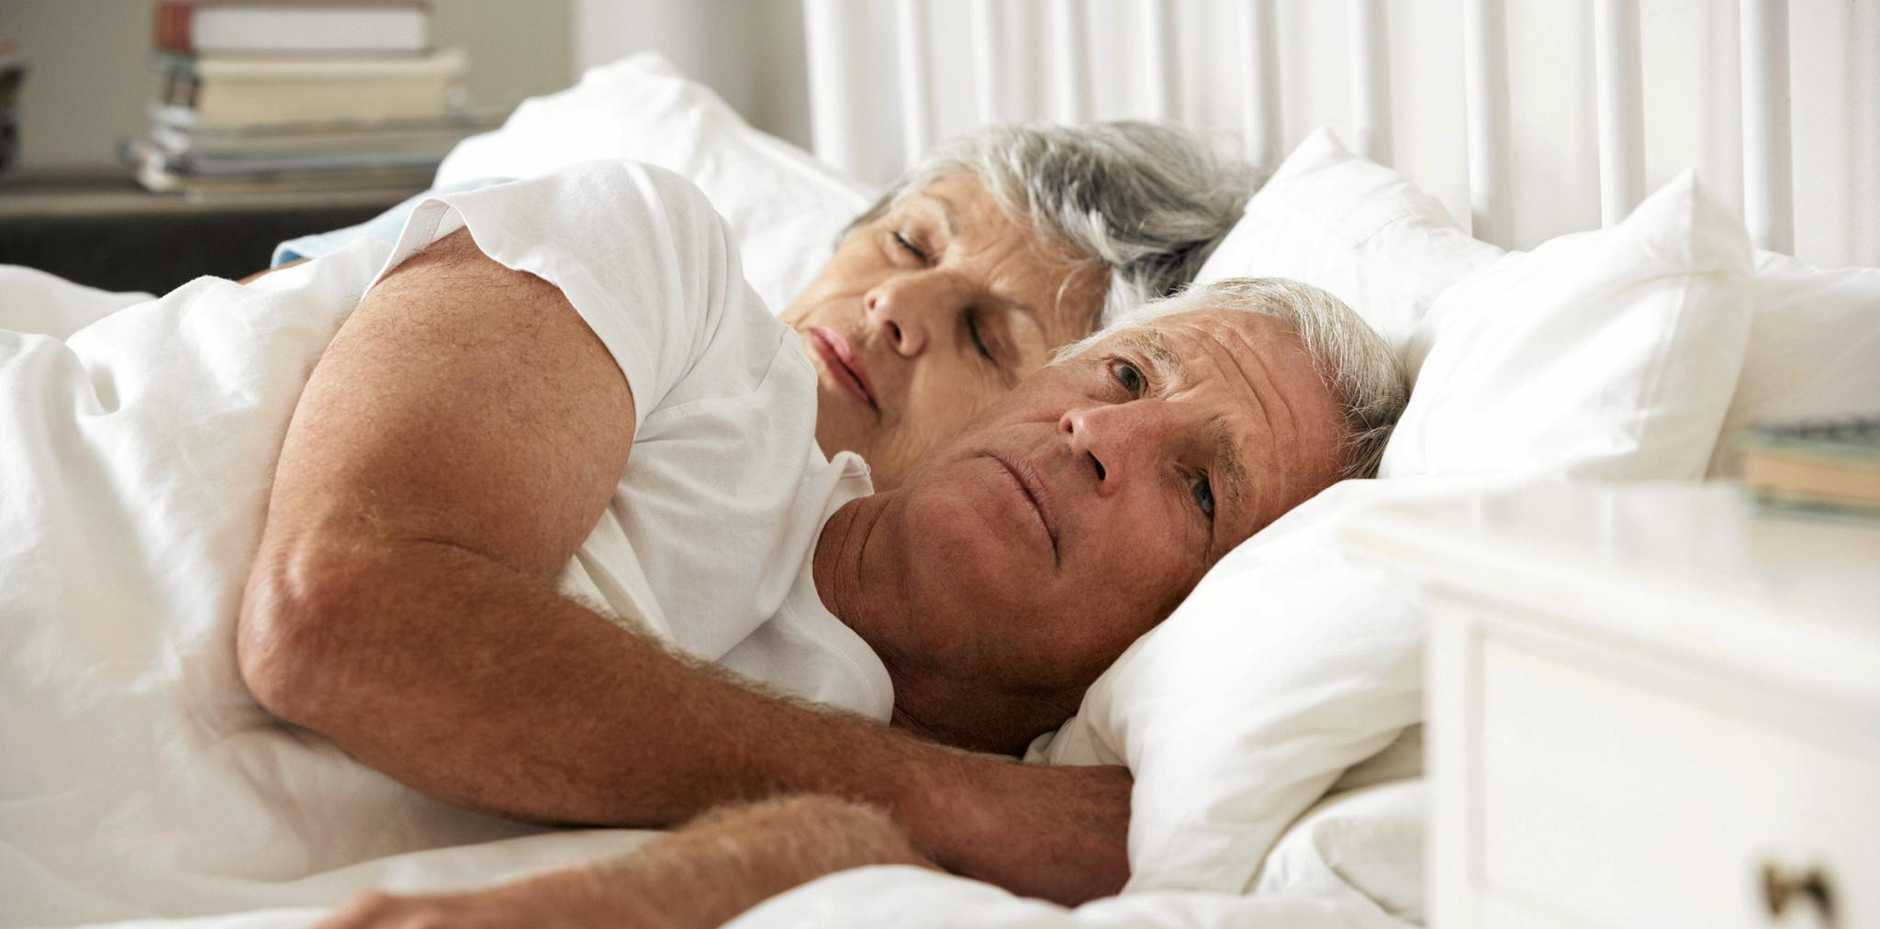 MEN'S HEALTH: Get advice on dealing with the common problem of erectile dysfunction.